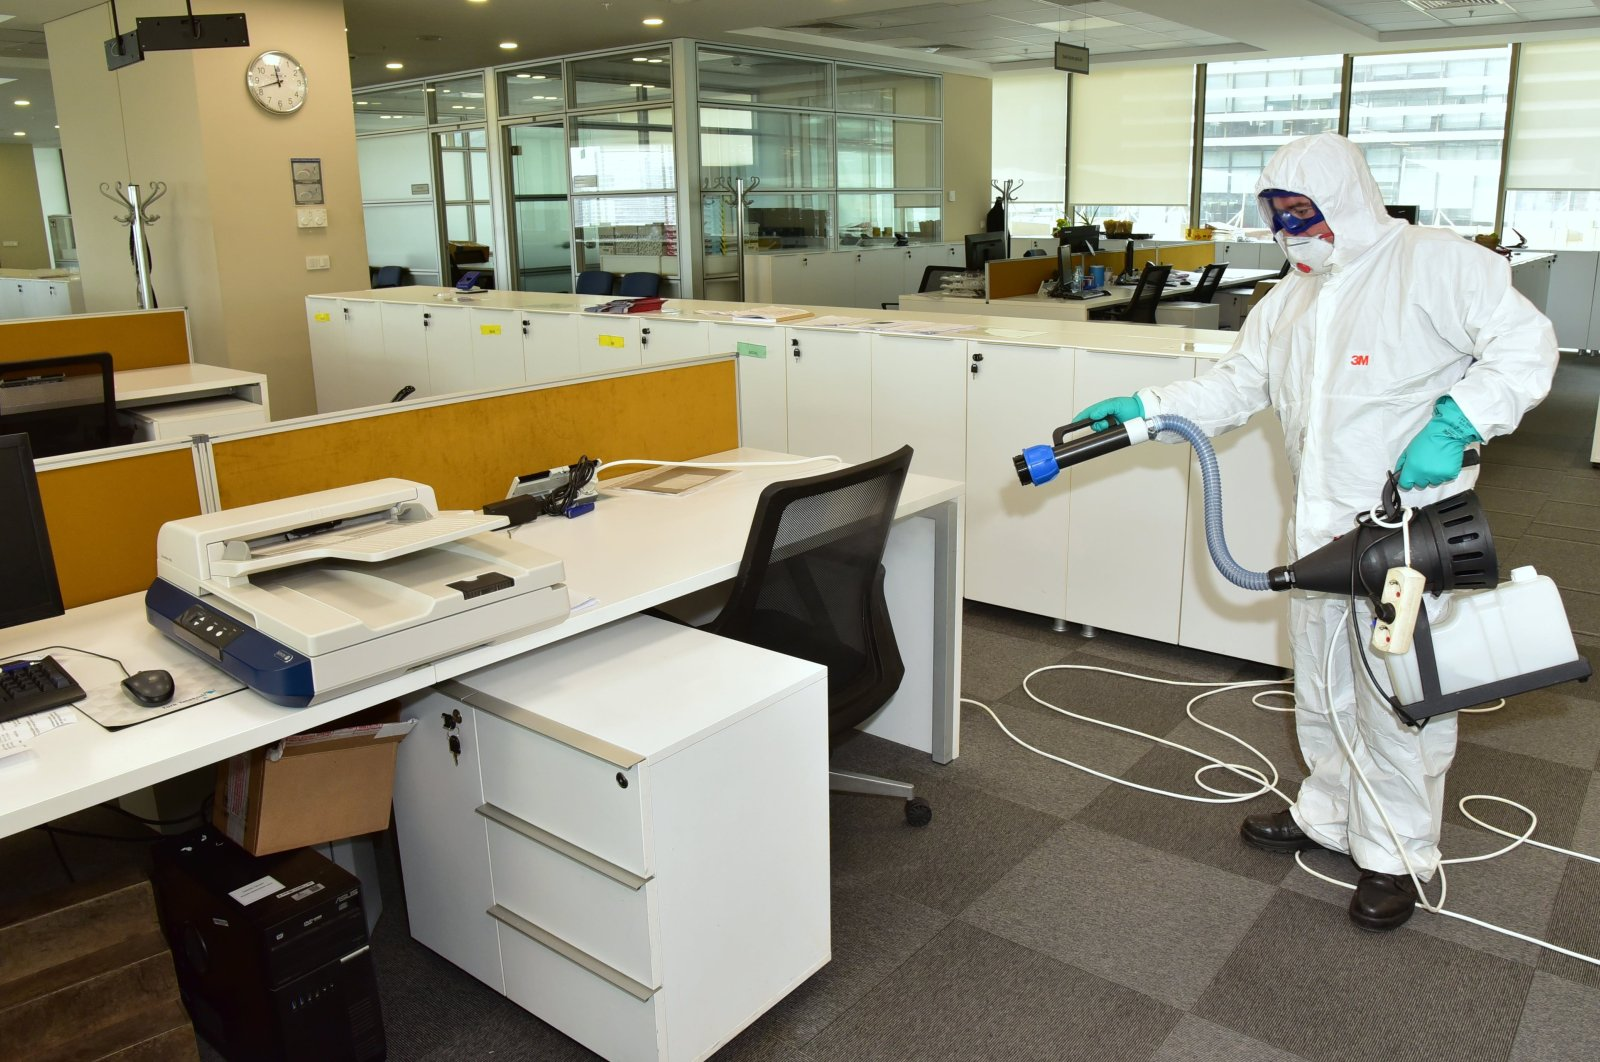 A man seen with a disinfection equippment in an office in Turkey. (IHA Photo)